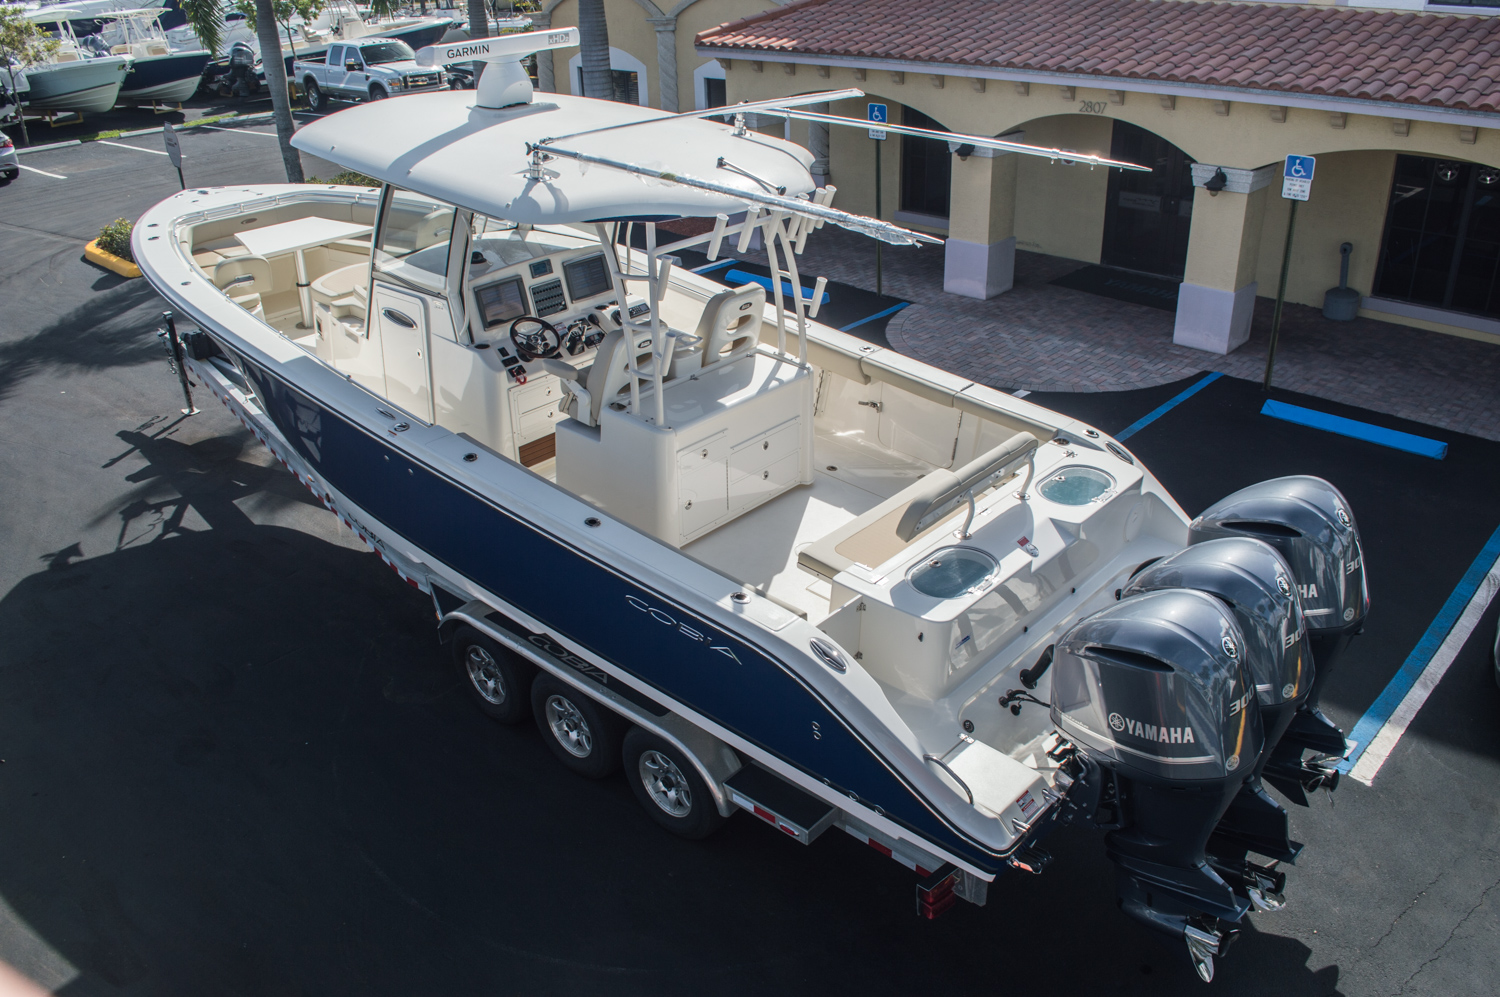 Thumbnail 2 for New 2016 Cobia 344 Center Console boat for sale in West Palm Beach, FL